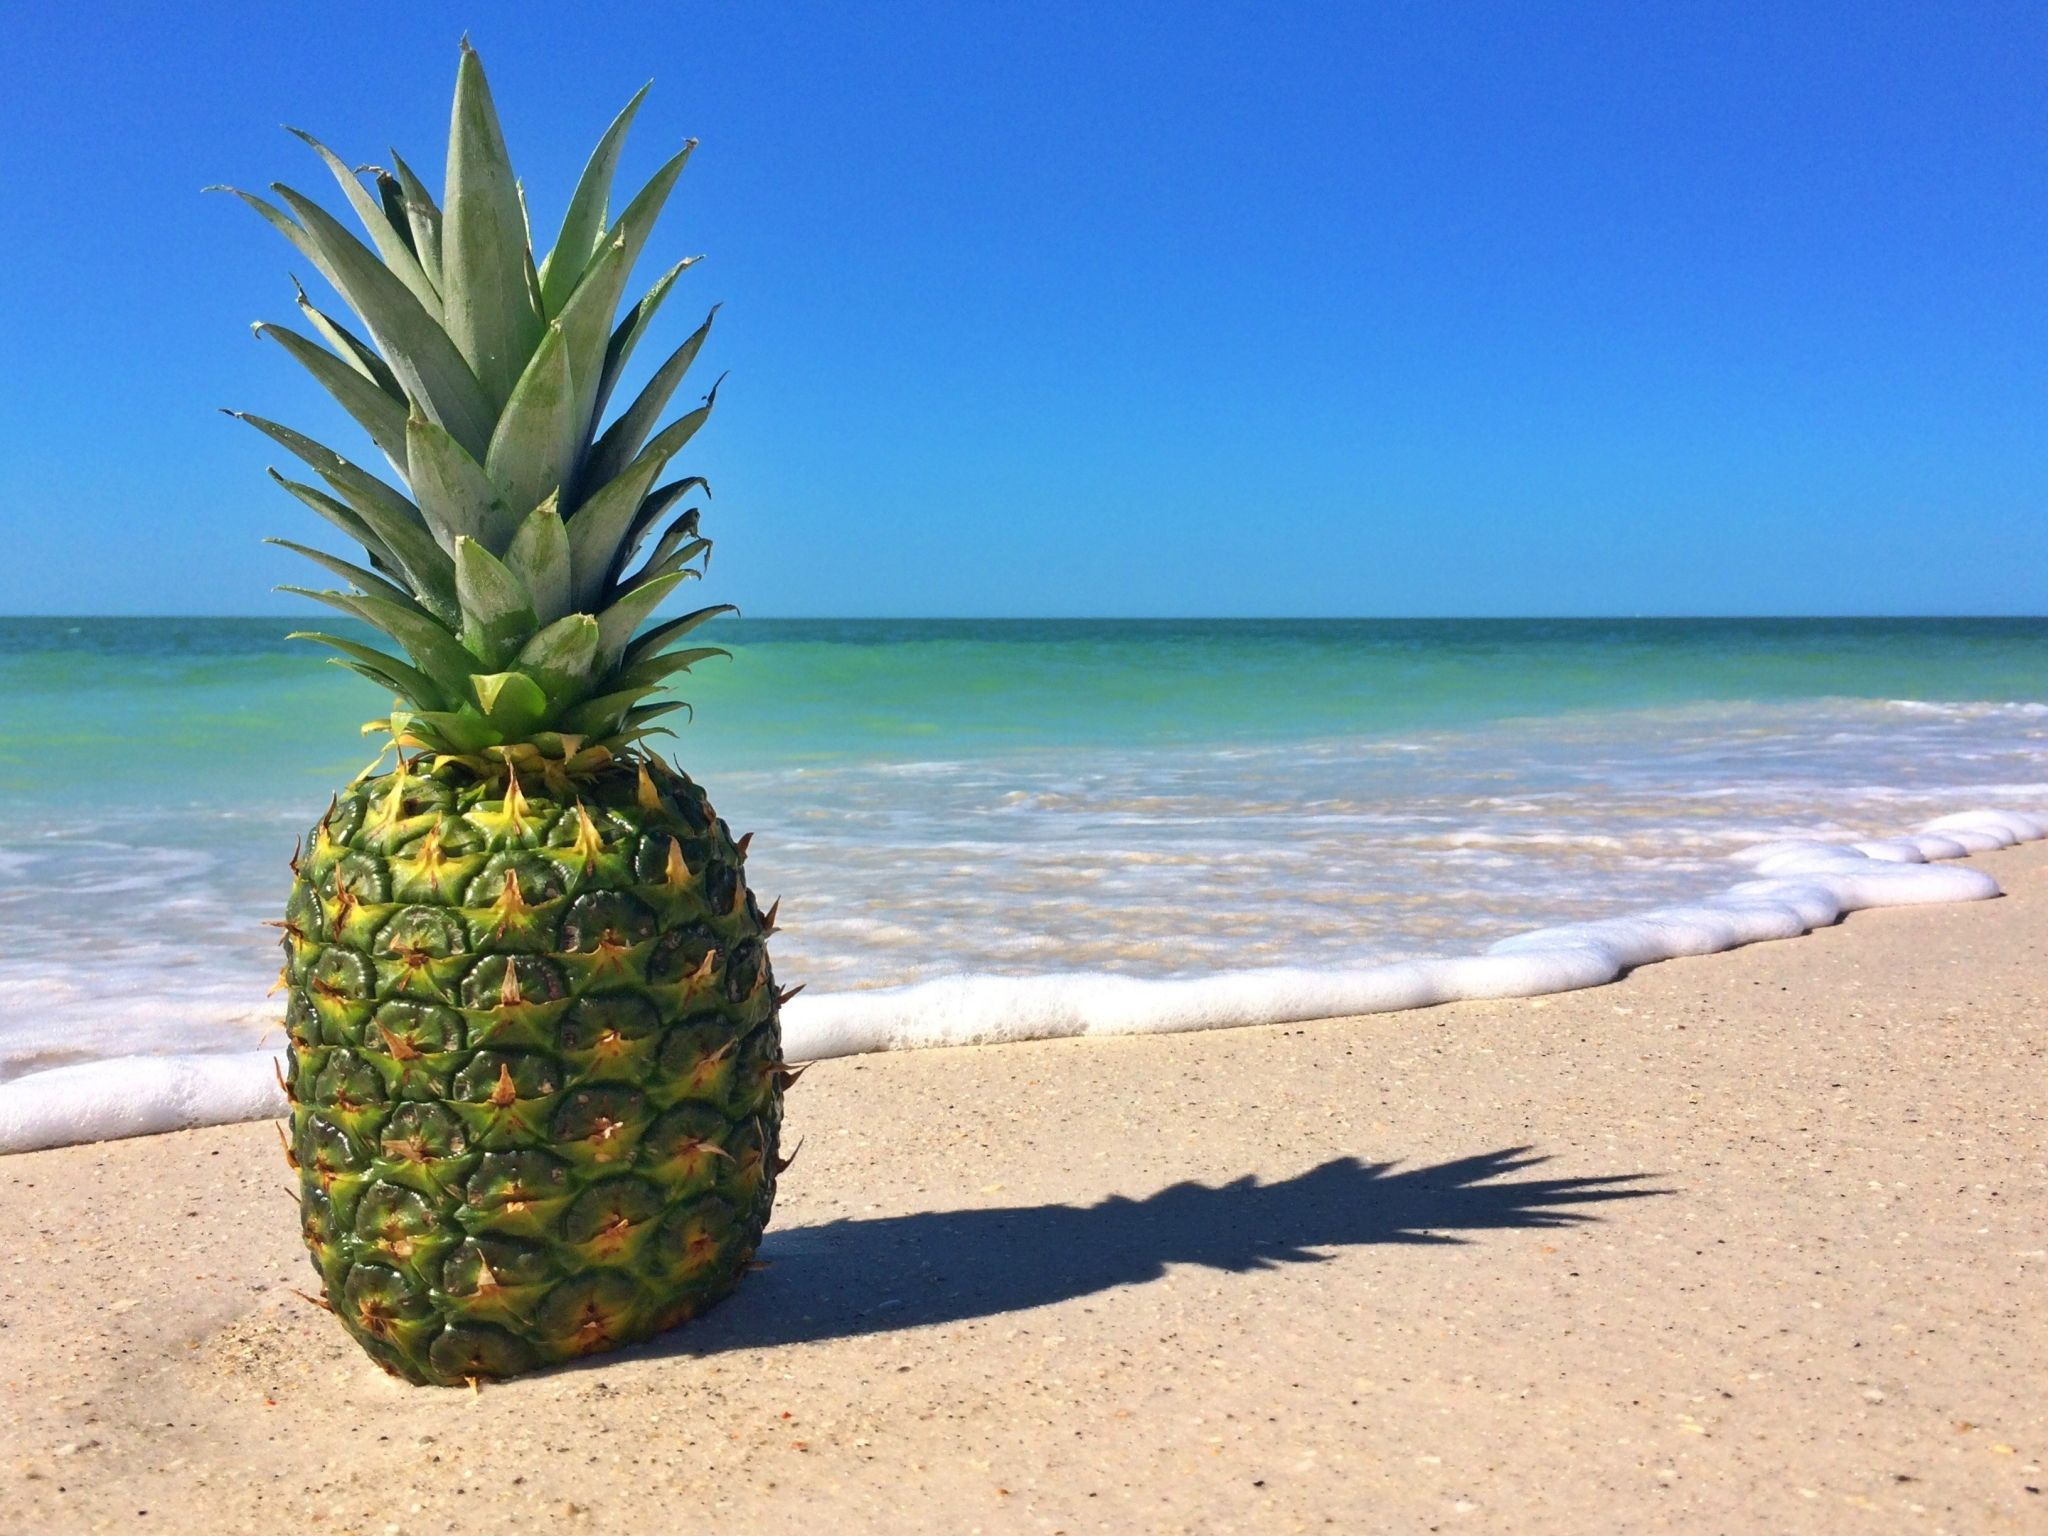 pineapple computer wallpaper backgrounds Pineapple